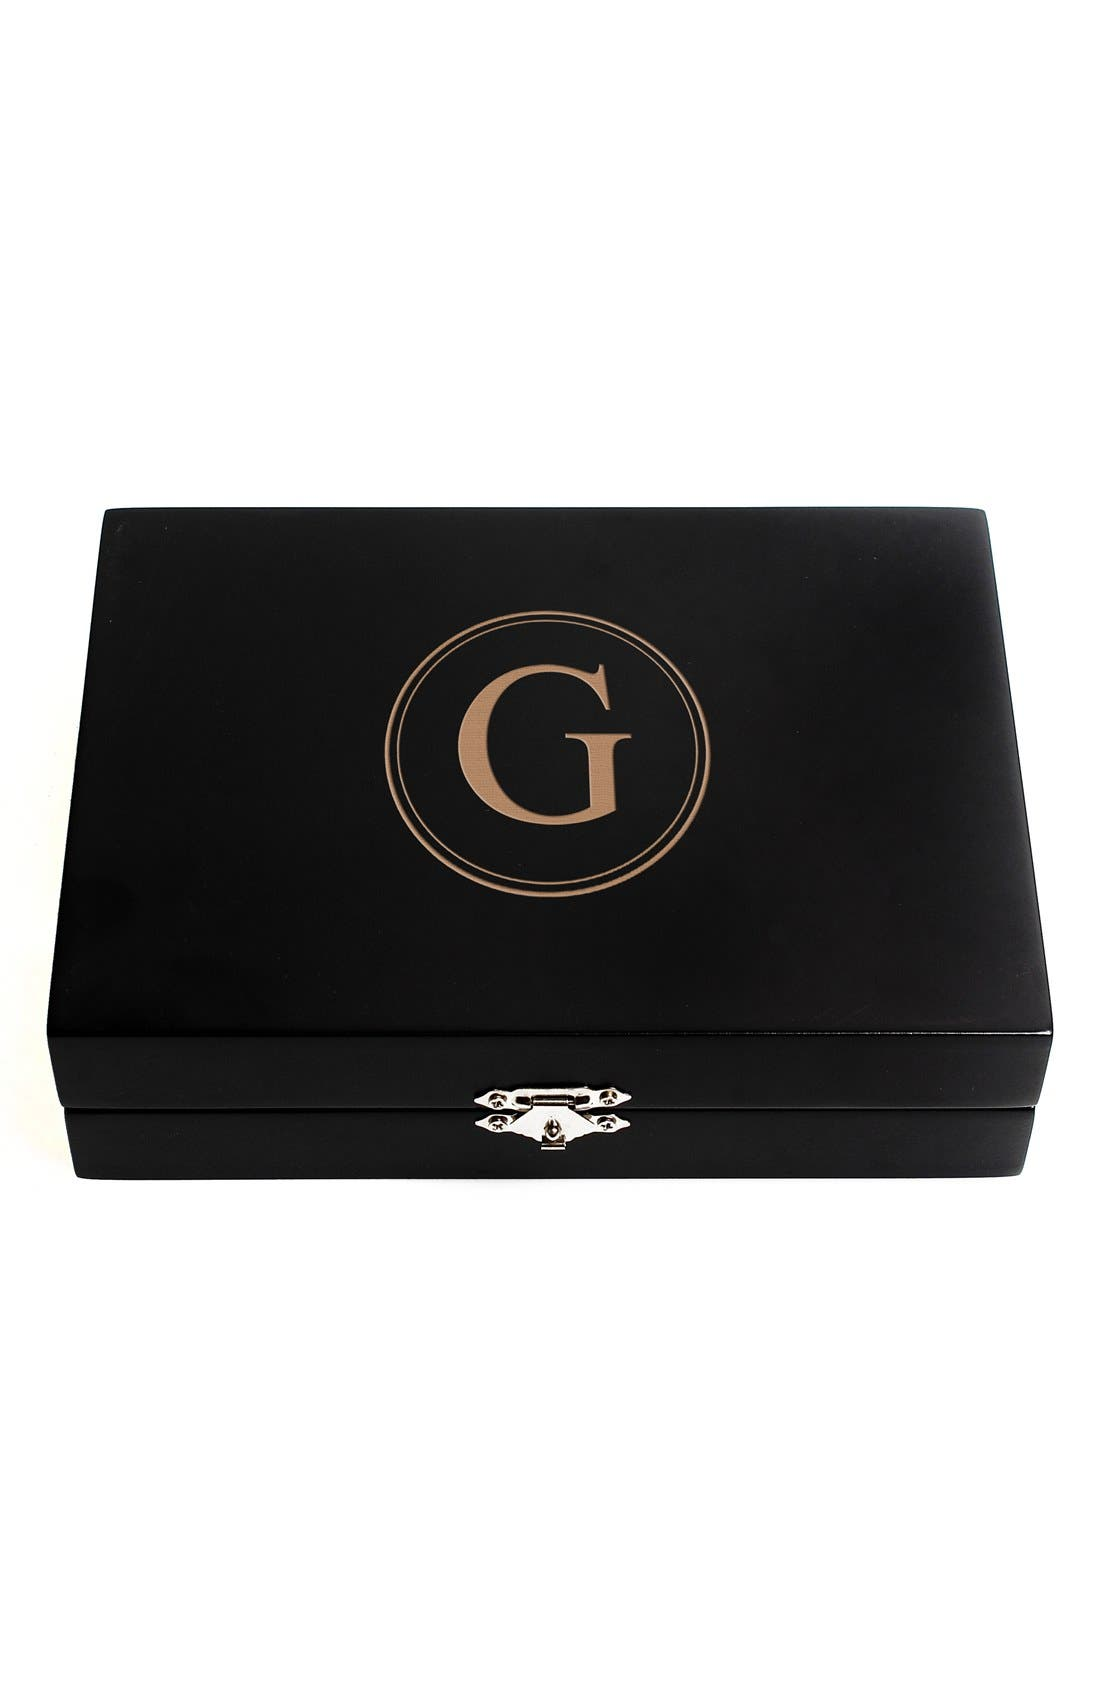 Monogram Wooden Jewelry Box,                             Main thumbnail 9, color,